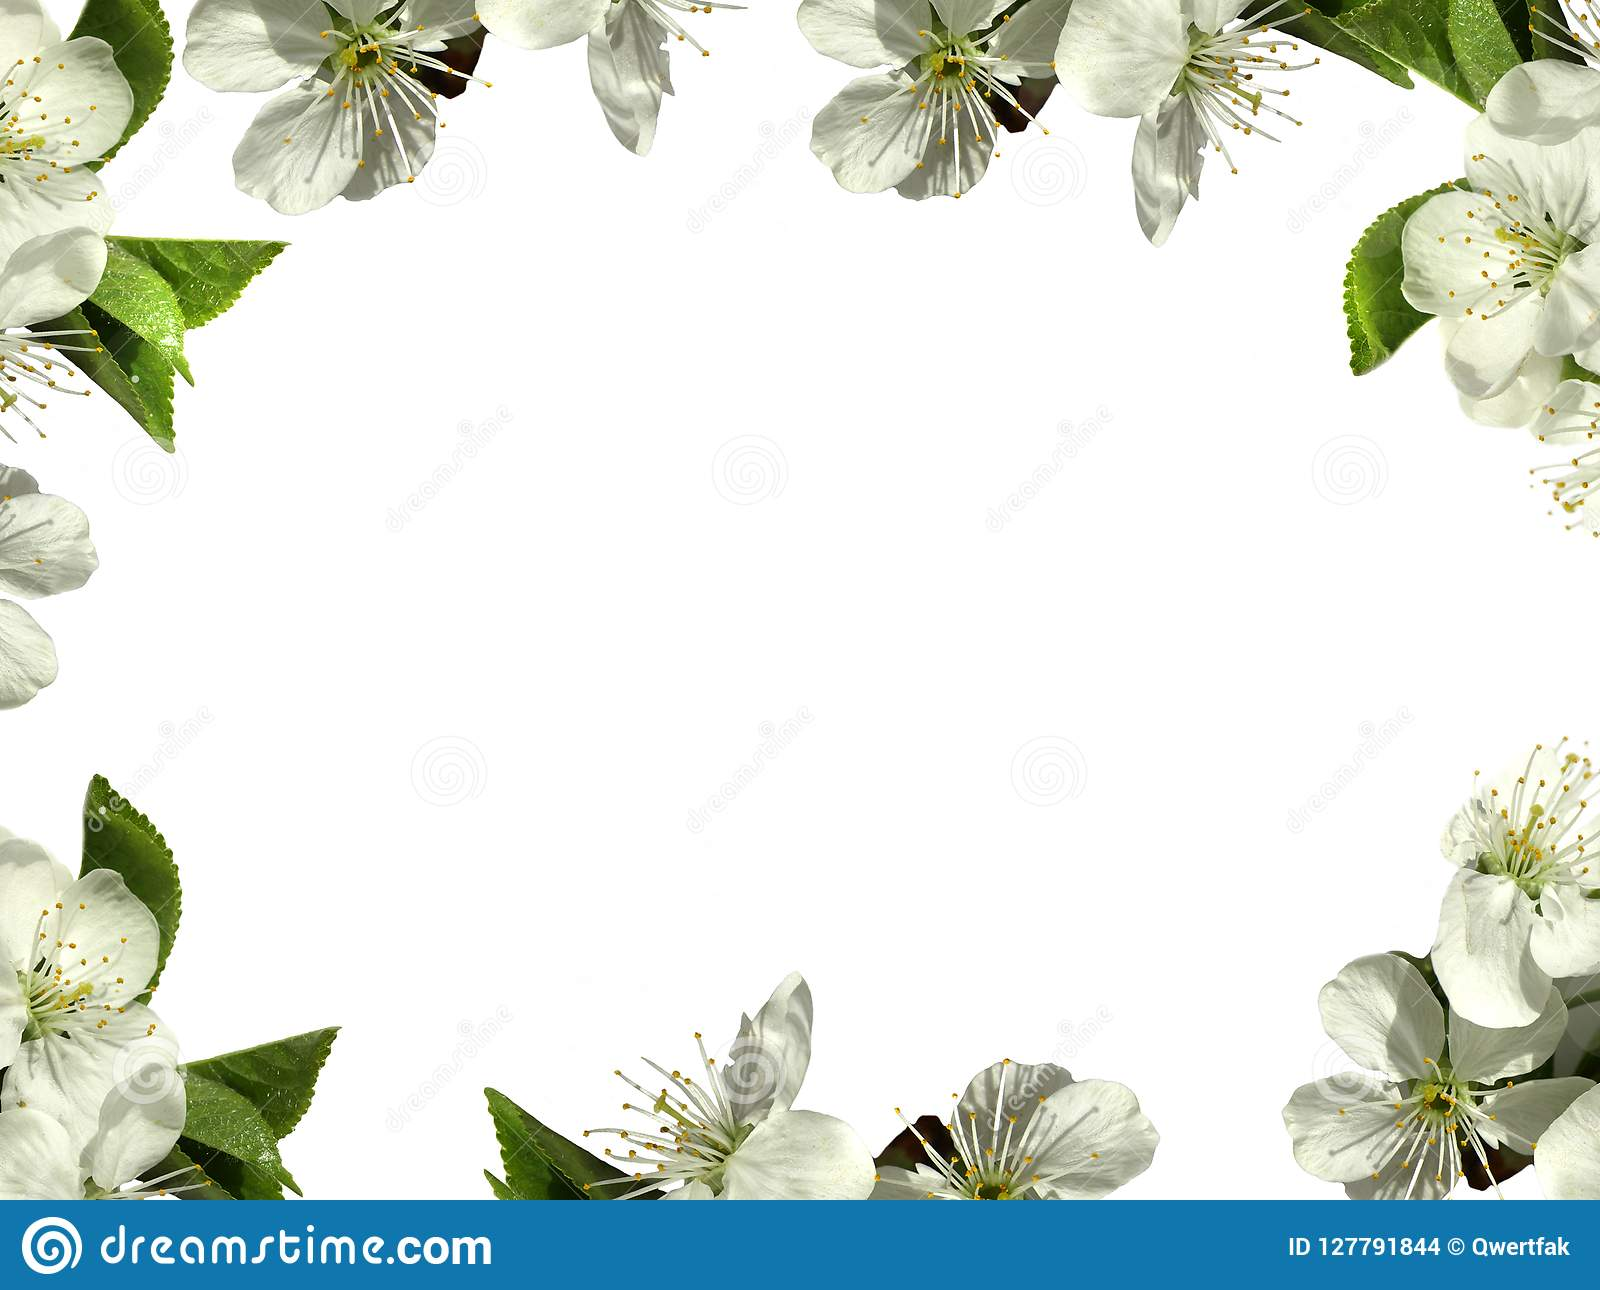 Frame With White Flowers. PNG. Stock Photo.